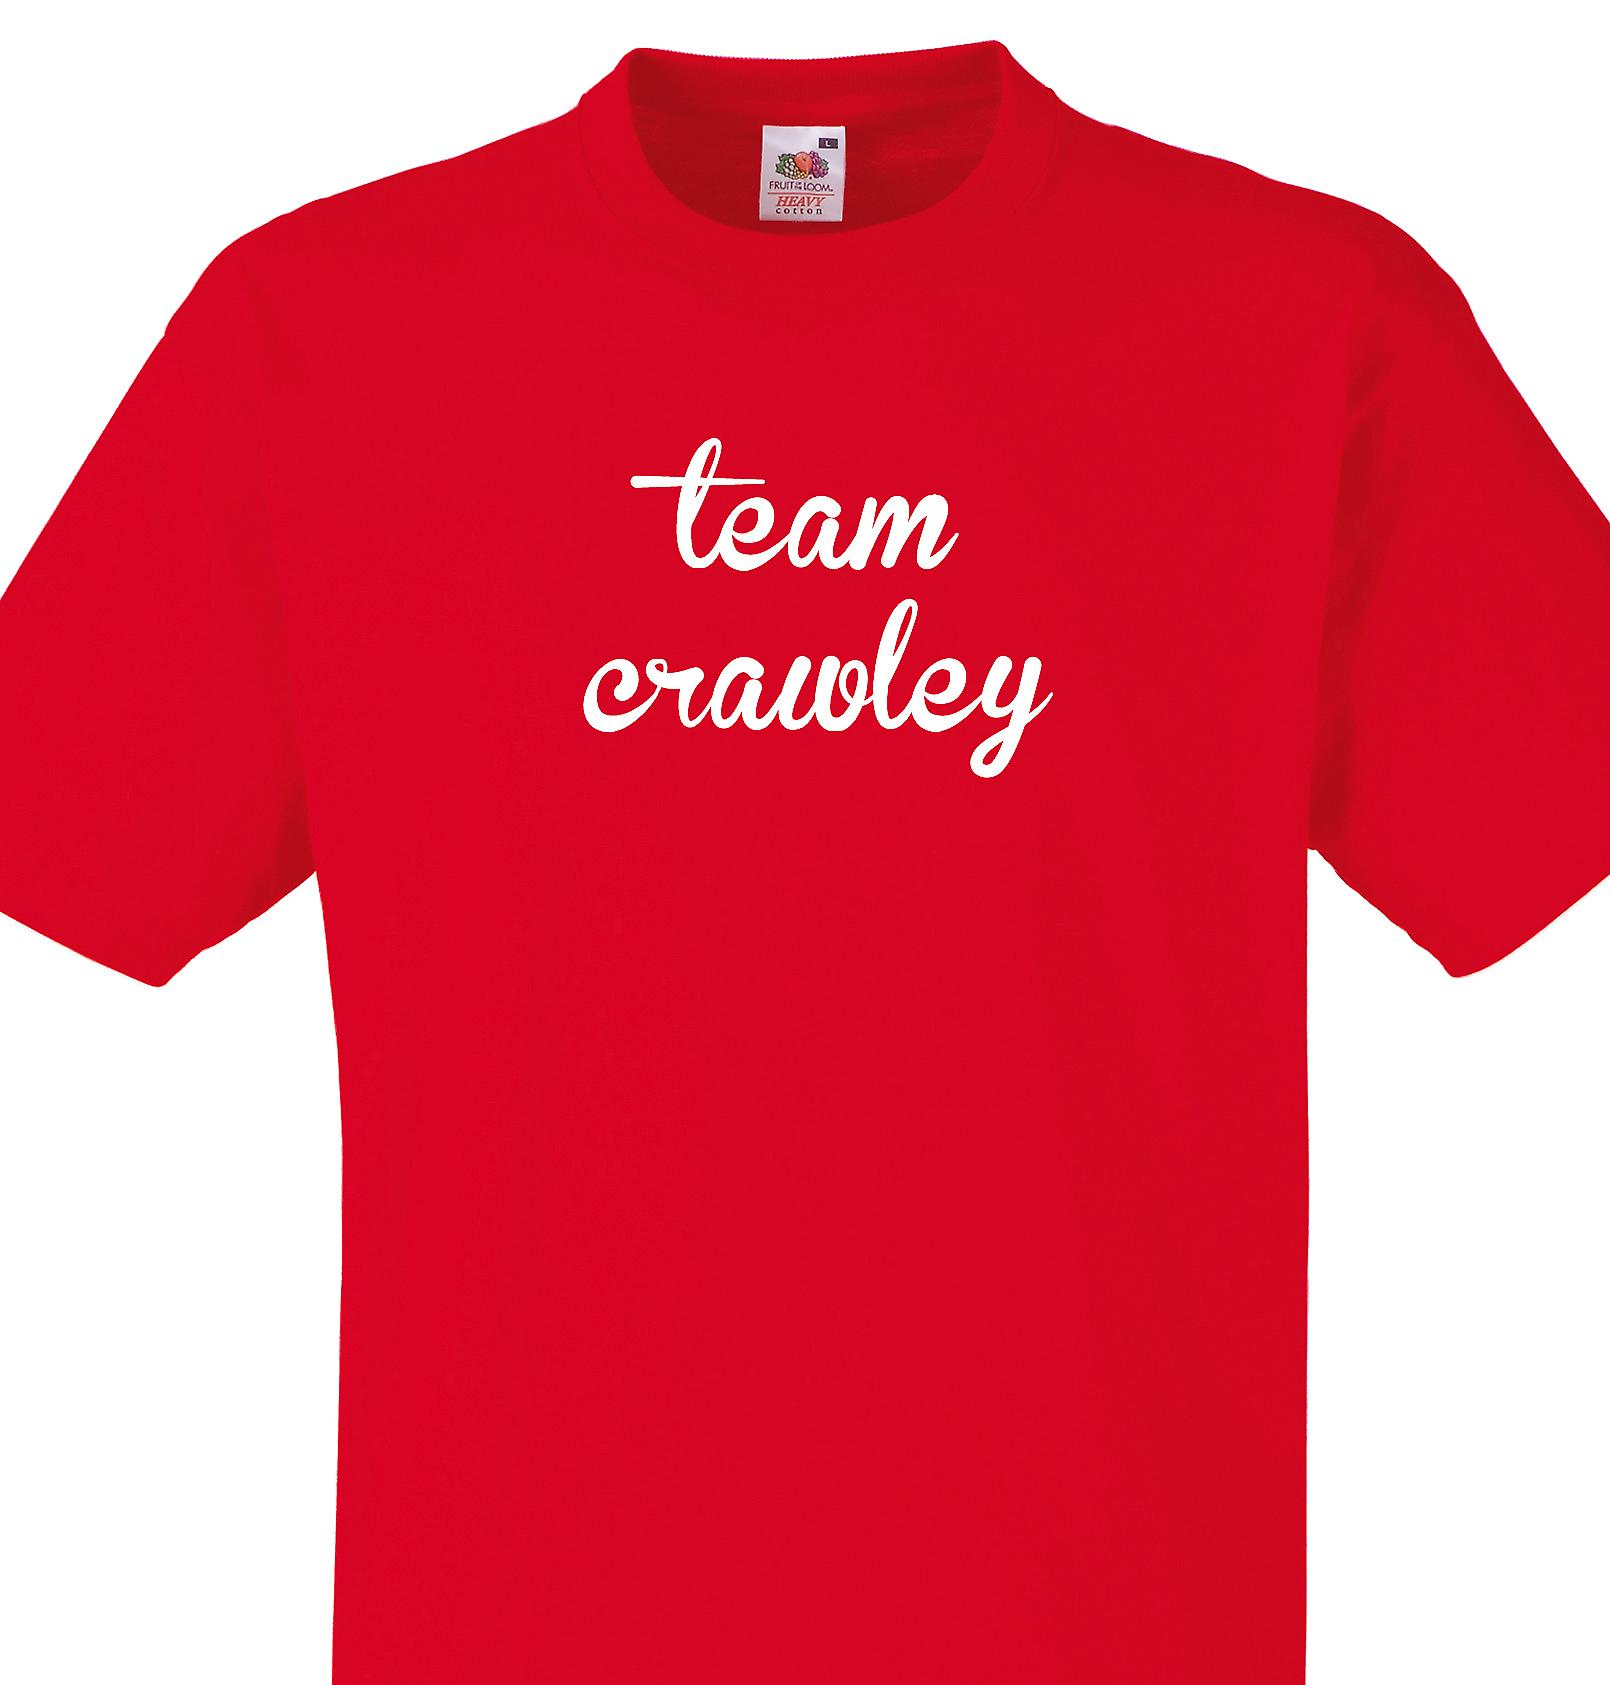 Team Crawley Red T shirt